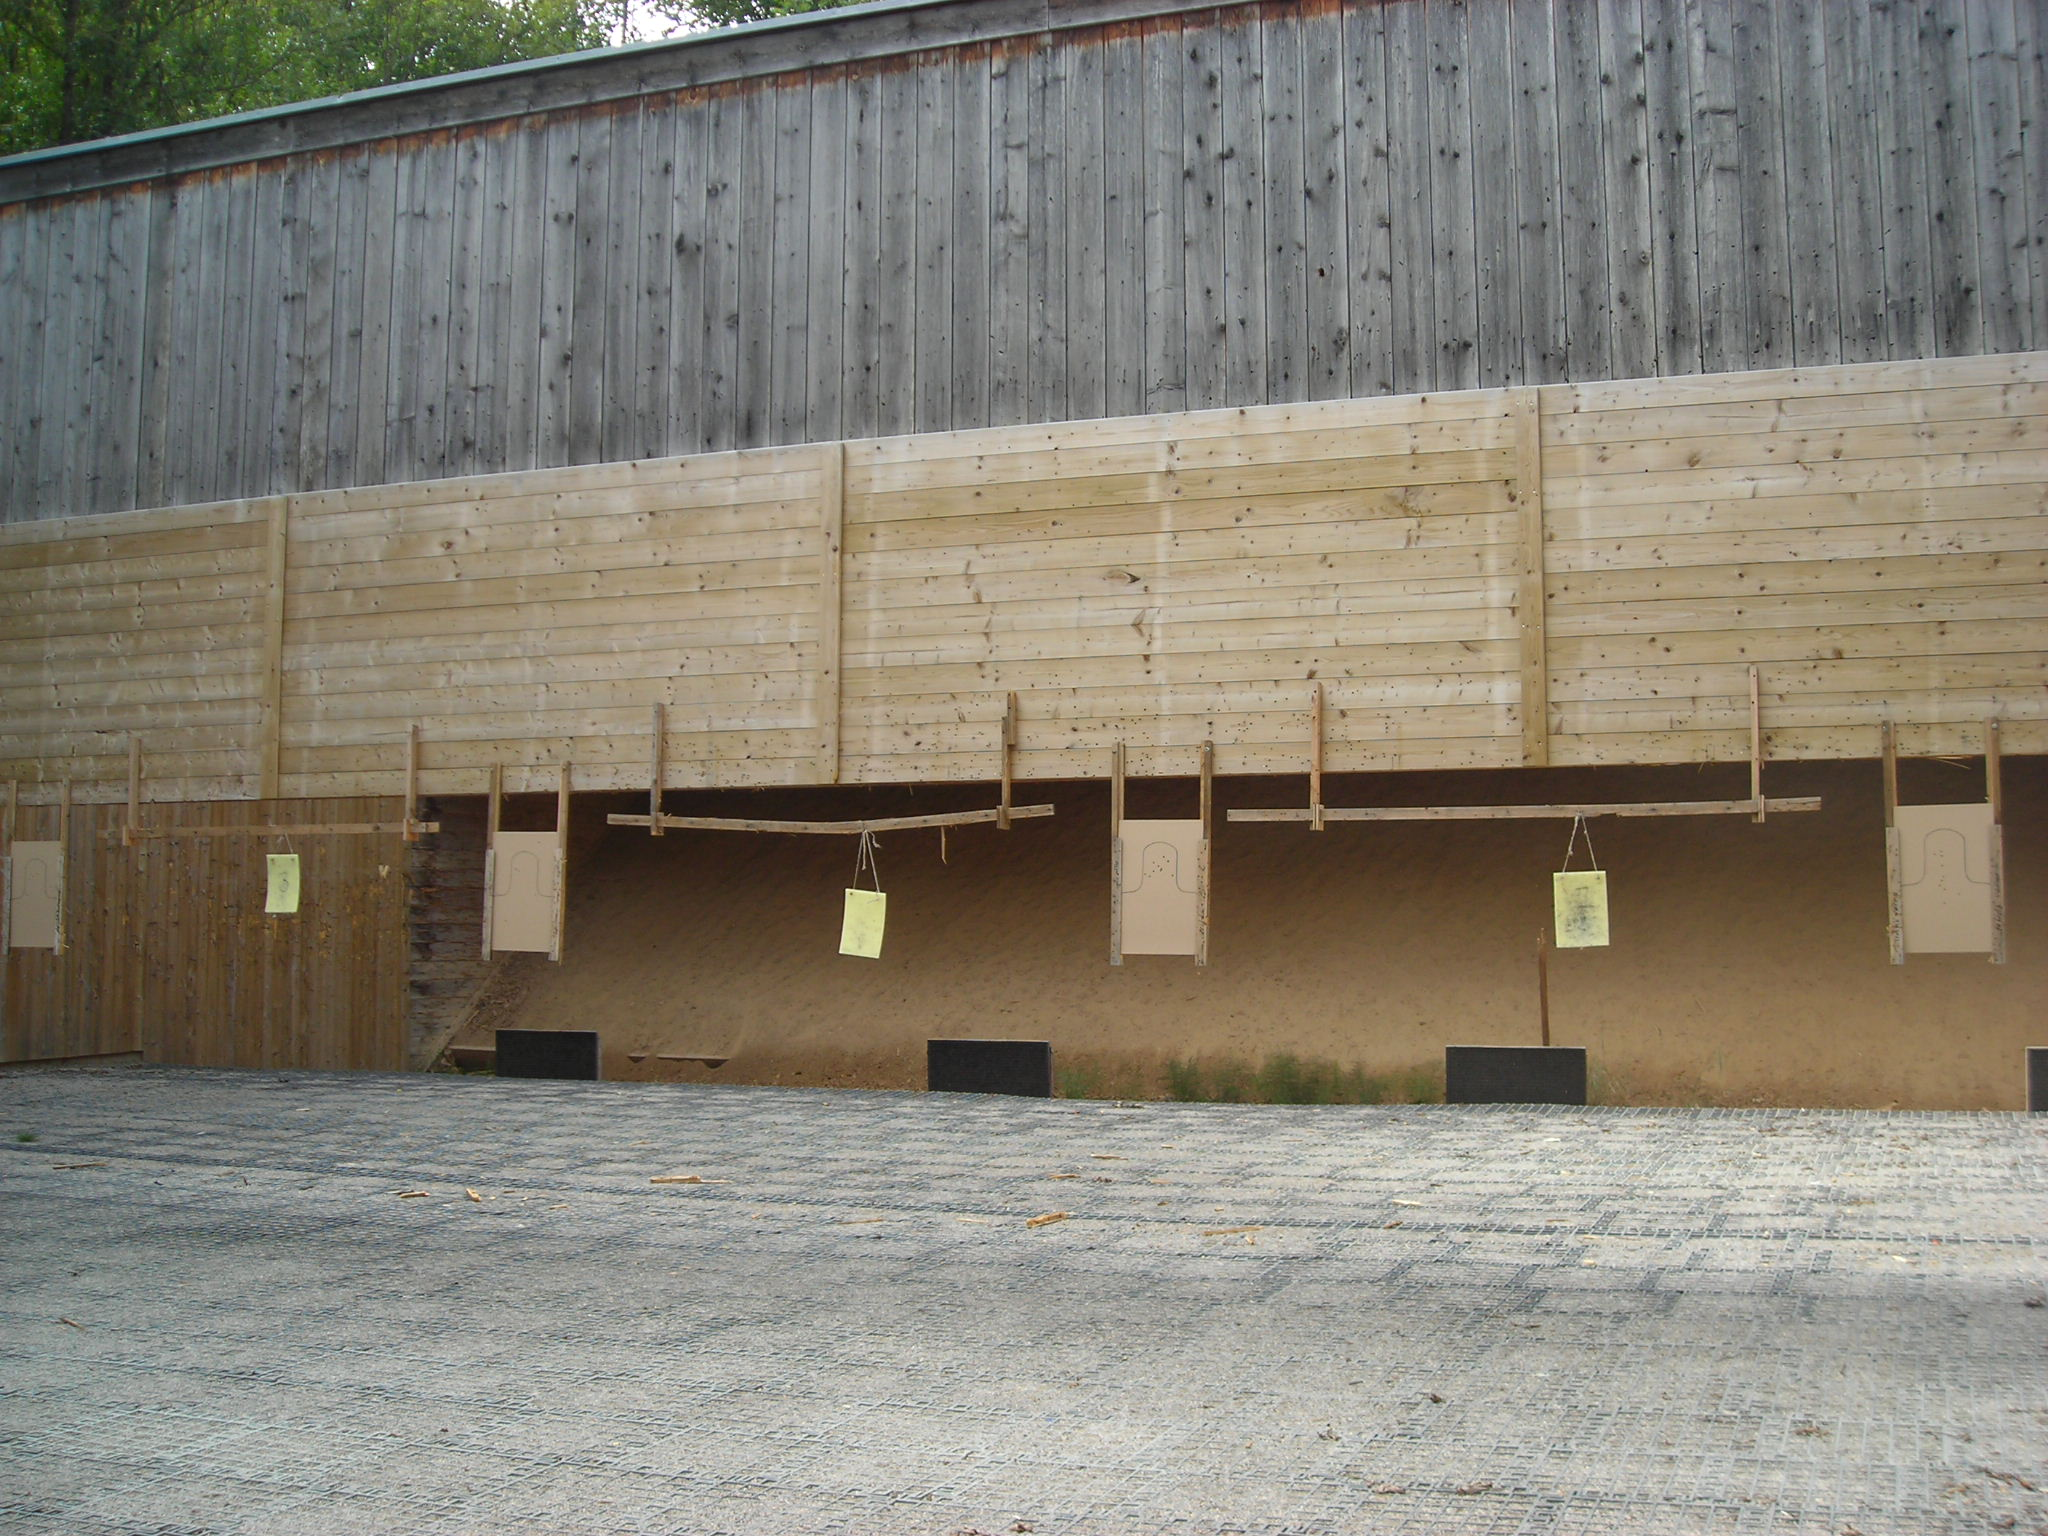 Gun Ranges In Fort Walton Beach